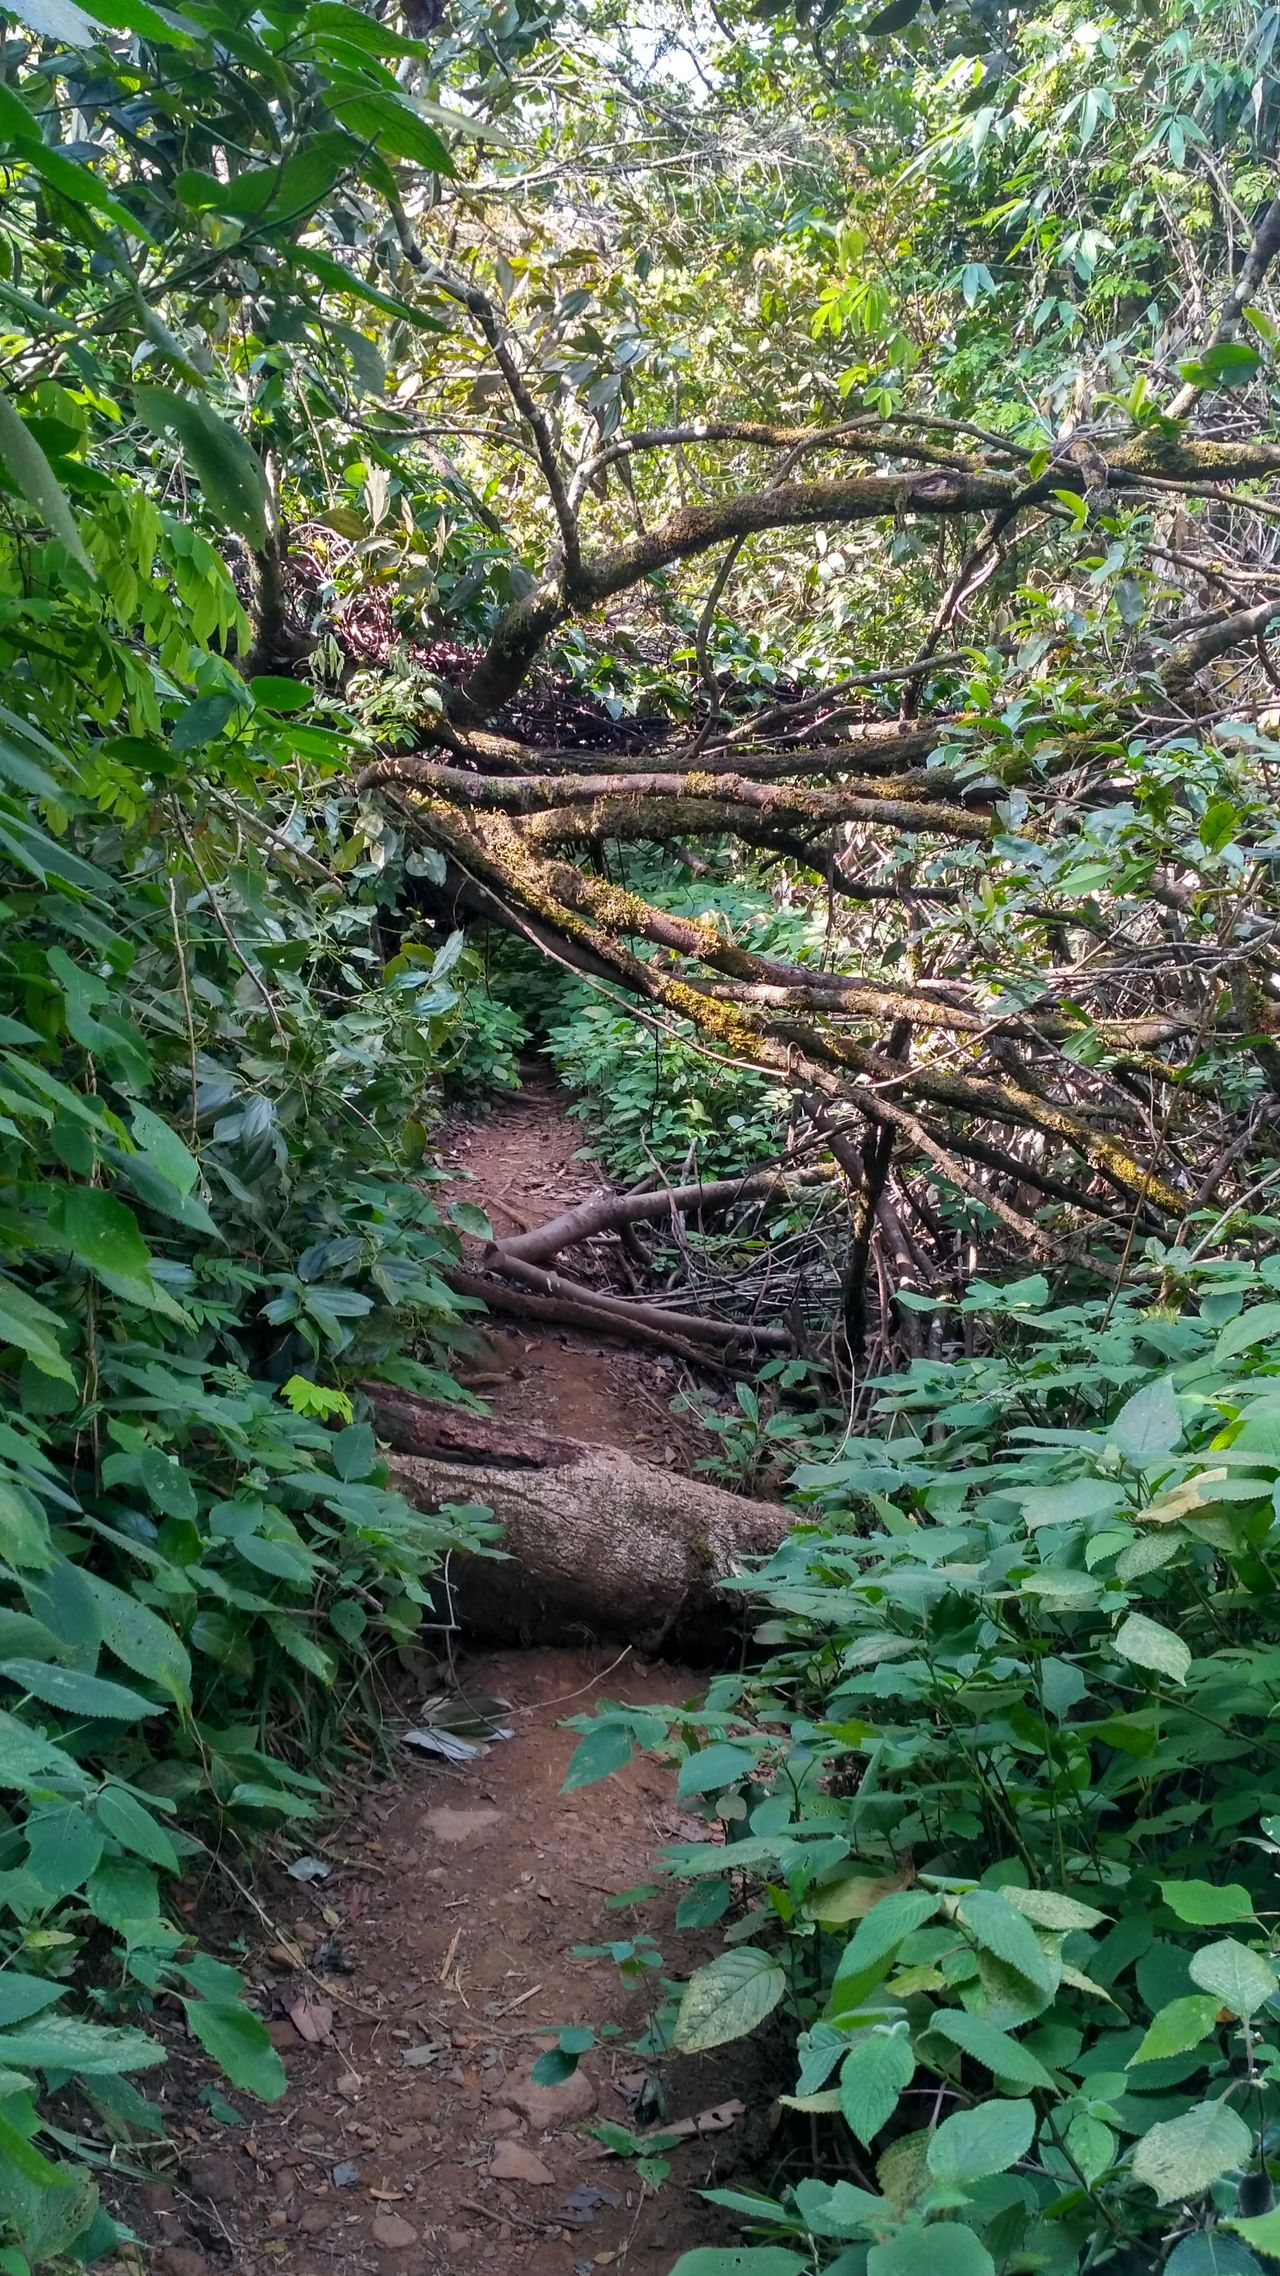 Tree Nature Growth No People Beauty In Nature Forest Greenery Fallen Tree Forest Path Trek Jungle Jungle Trekking Wild Branches